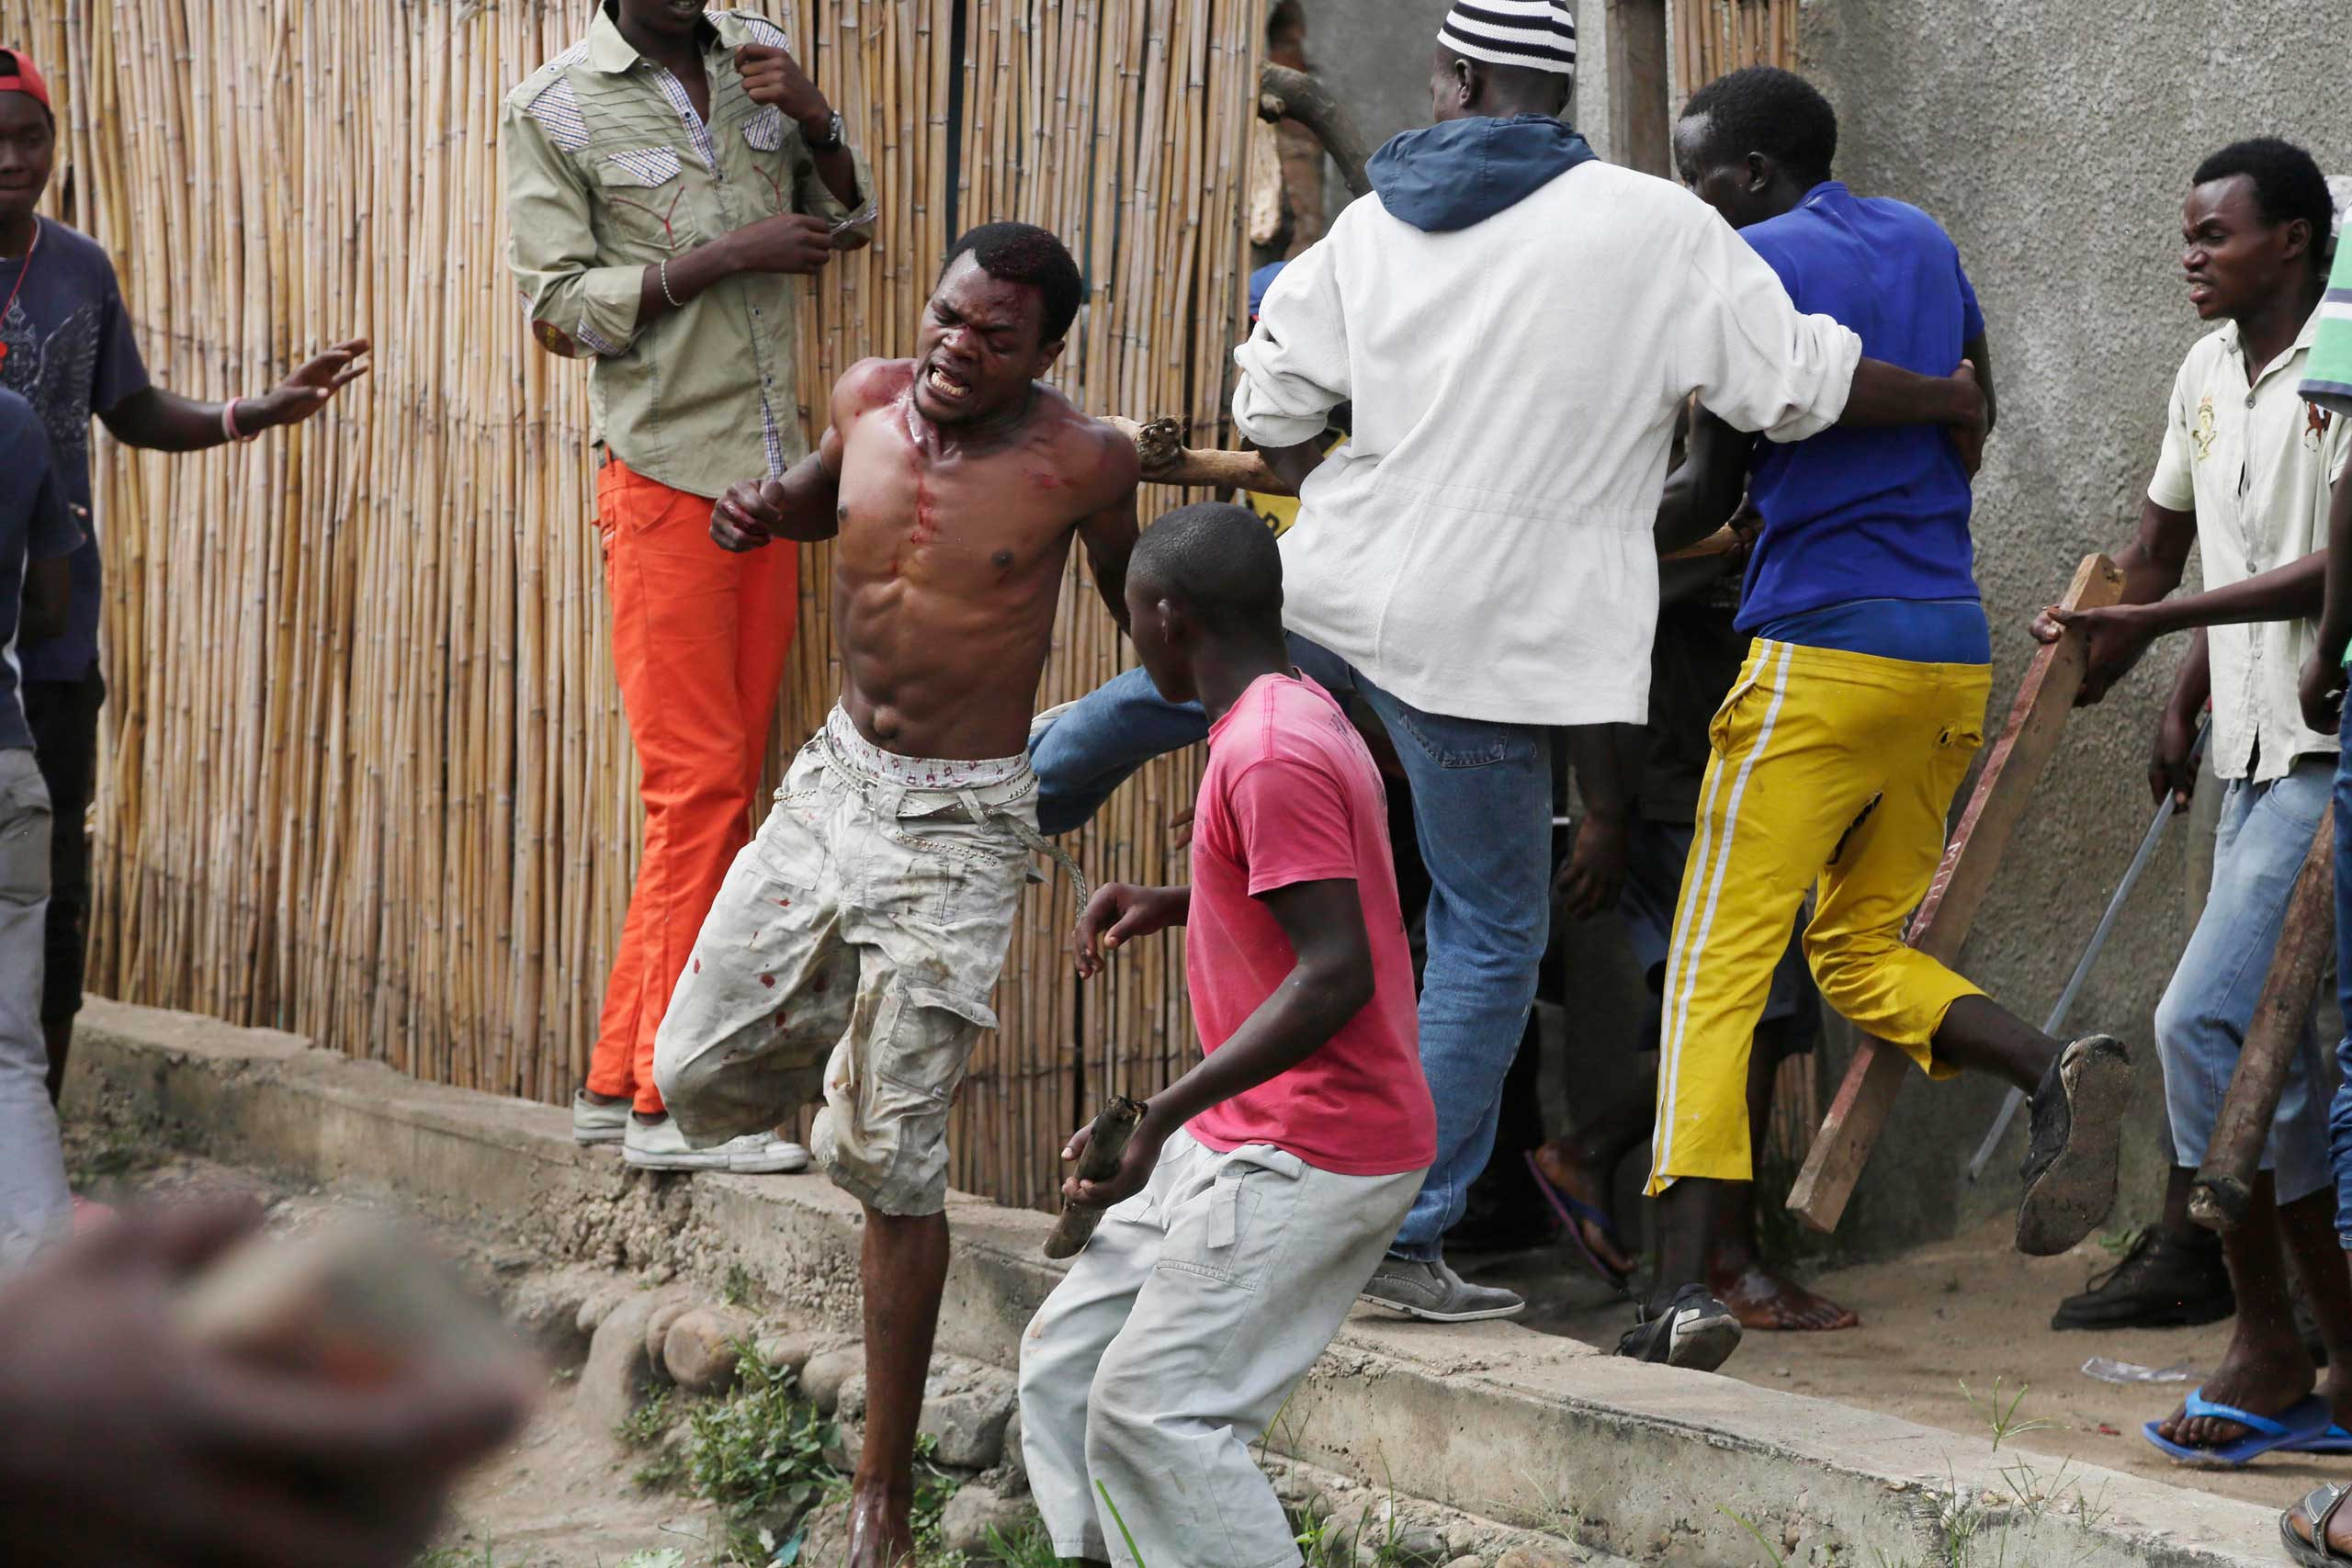 Niyonzima flees from his house while surrounded  by a mob.